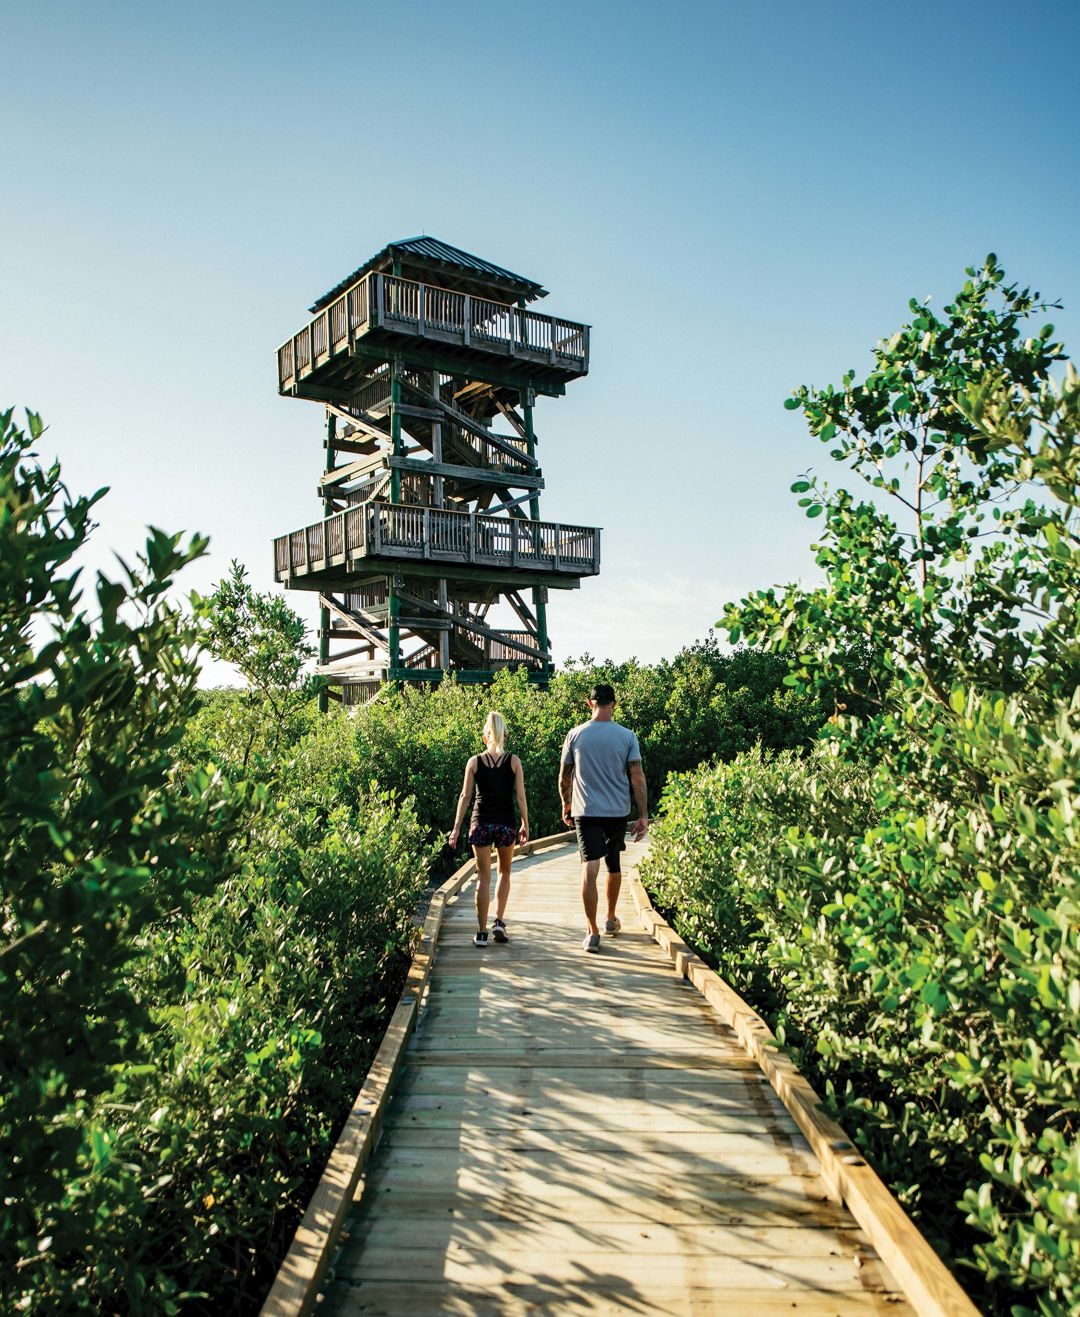 Visitors on their way to the observation tower at Robinson Preserve